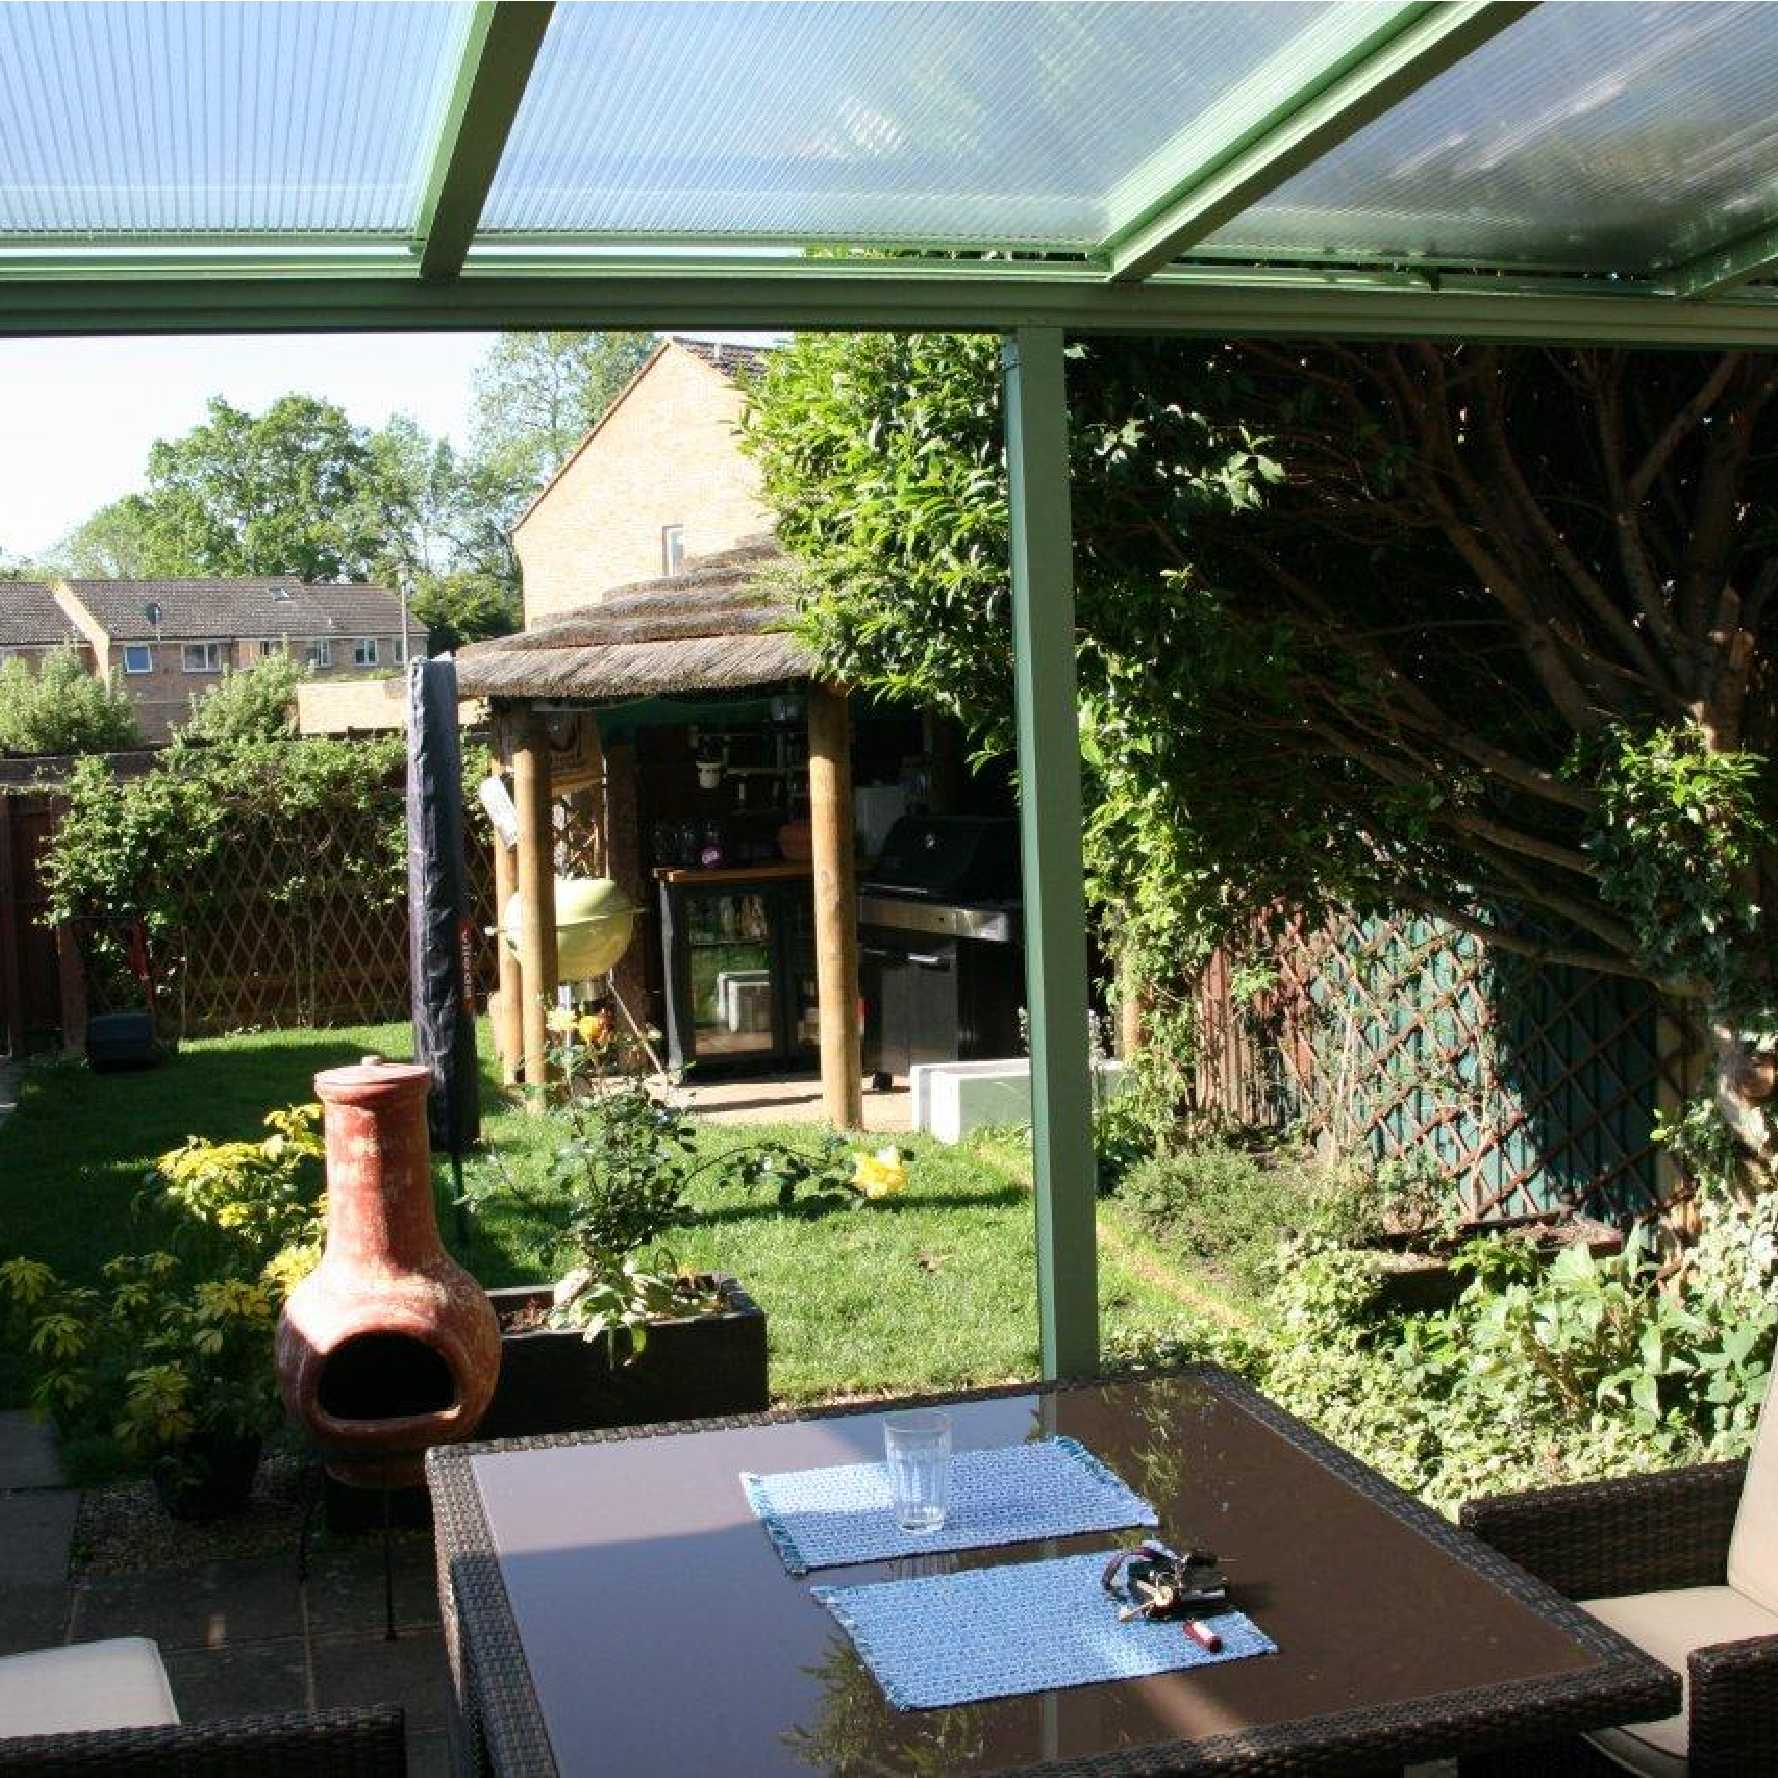 Affordable Omega Smart Lean-To Canopy with 16mm Polycarbonate Glazing - 8.4m (W) x 4.0m (P), (4) Supporting Posts